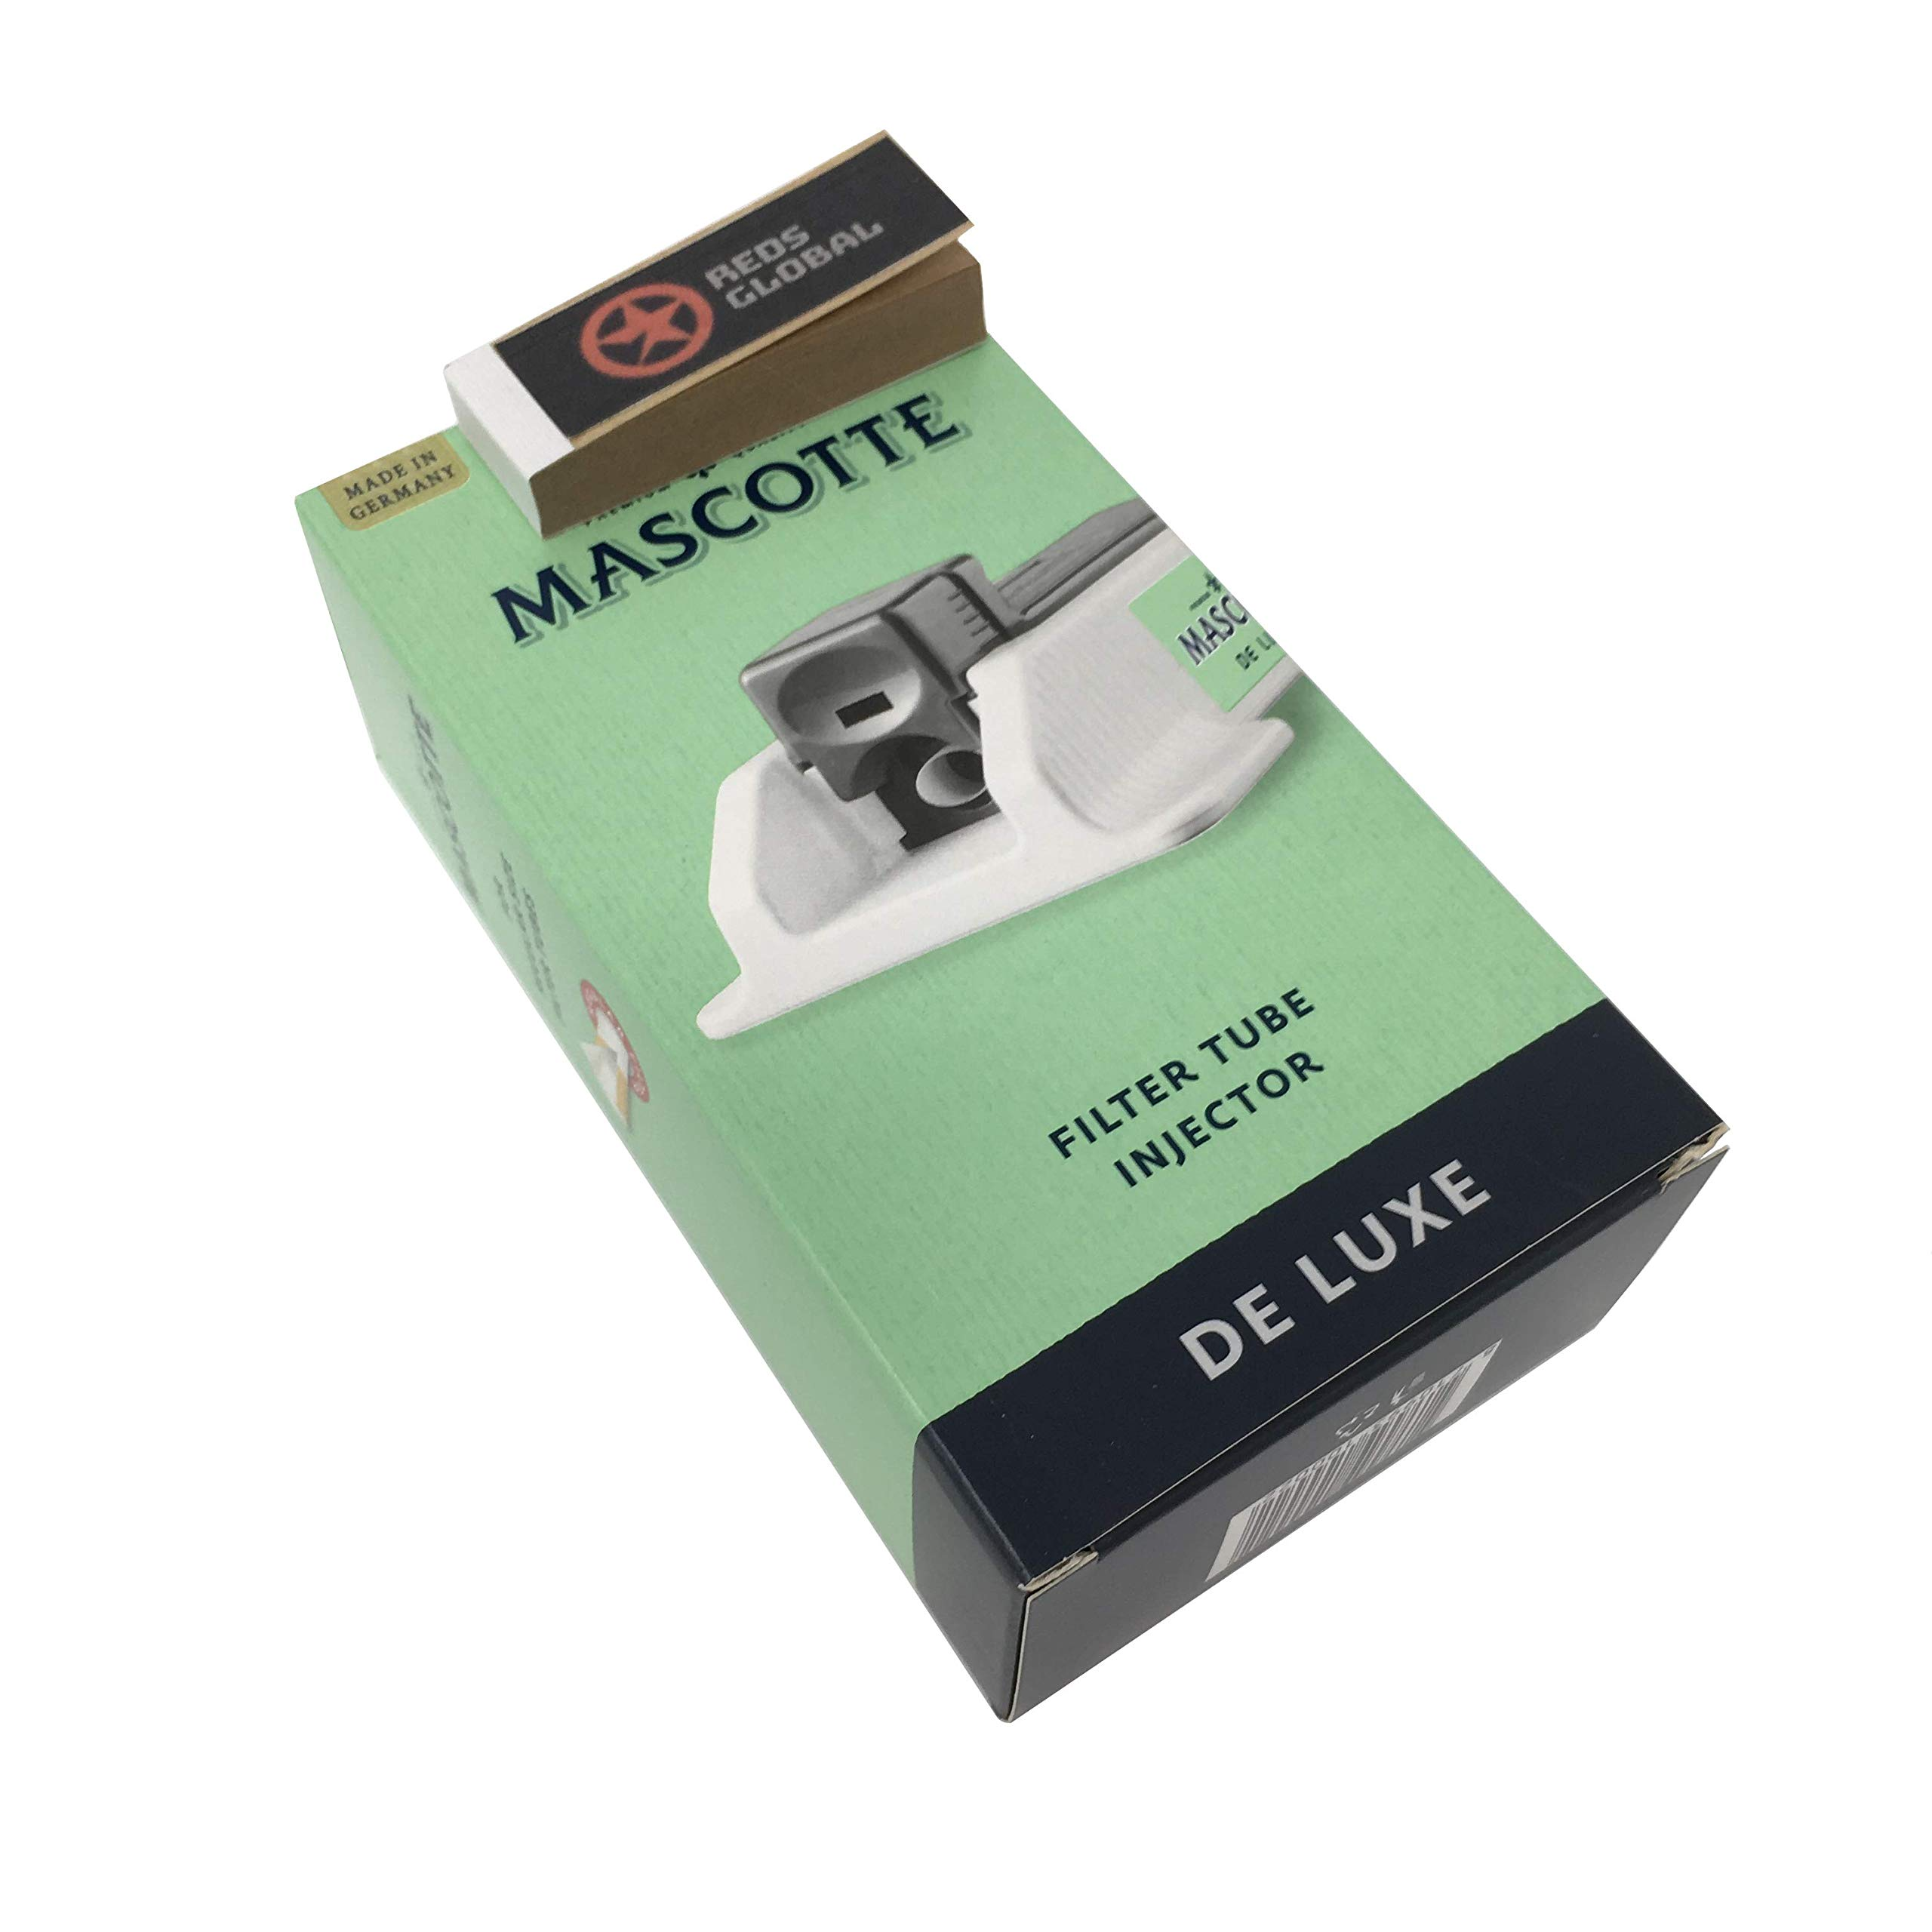 Mascotte Filter Tube Injector de Luxe